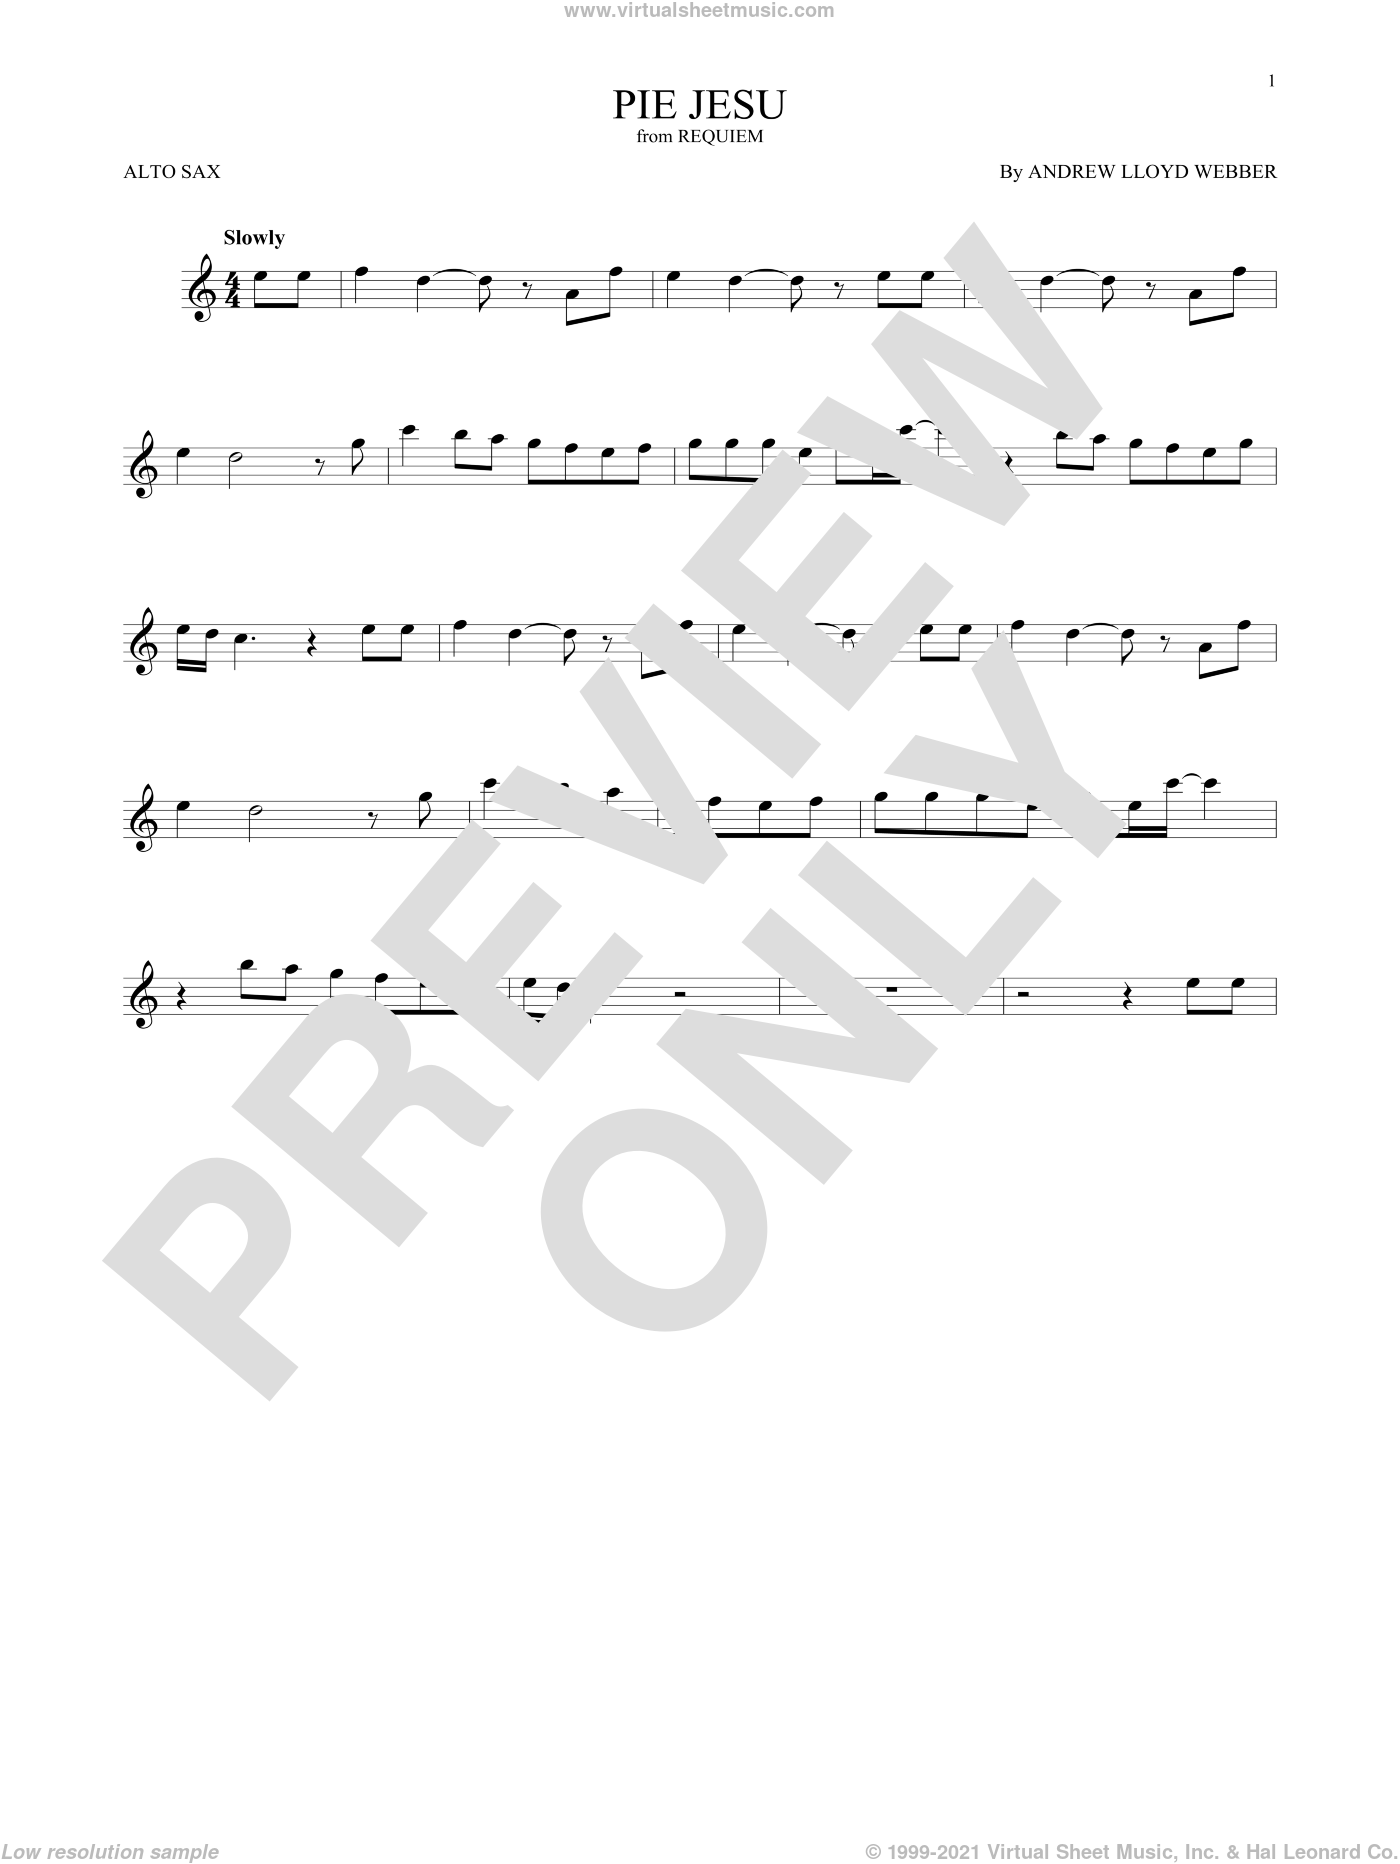 Pie Jesu (from Requiem) sheet music for alto saxophone solo by Andrew Lloyd Webber and Sarah Brightman, classical score, intermediate skill level